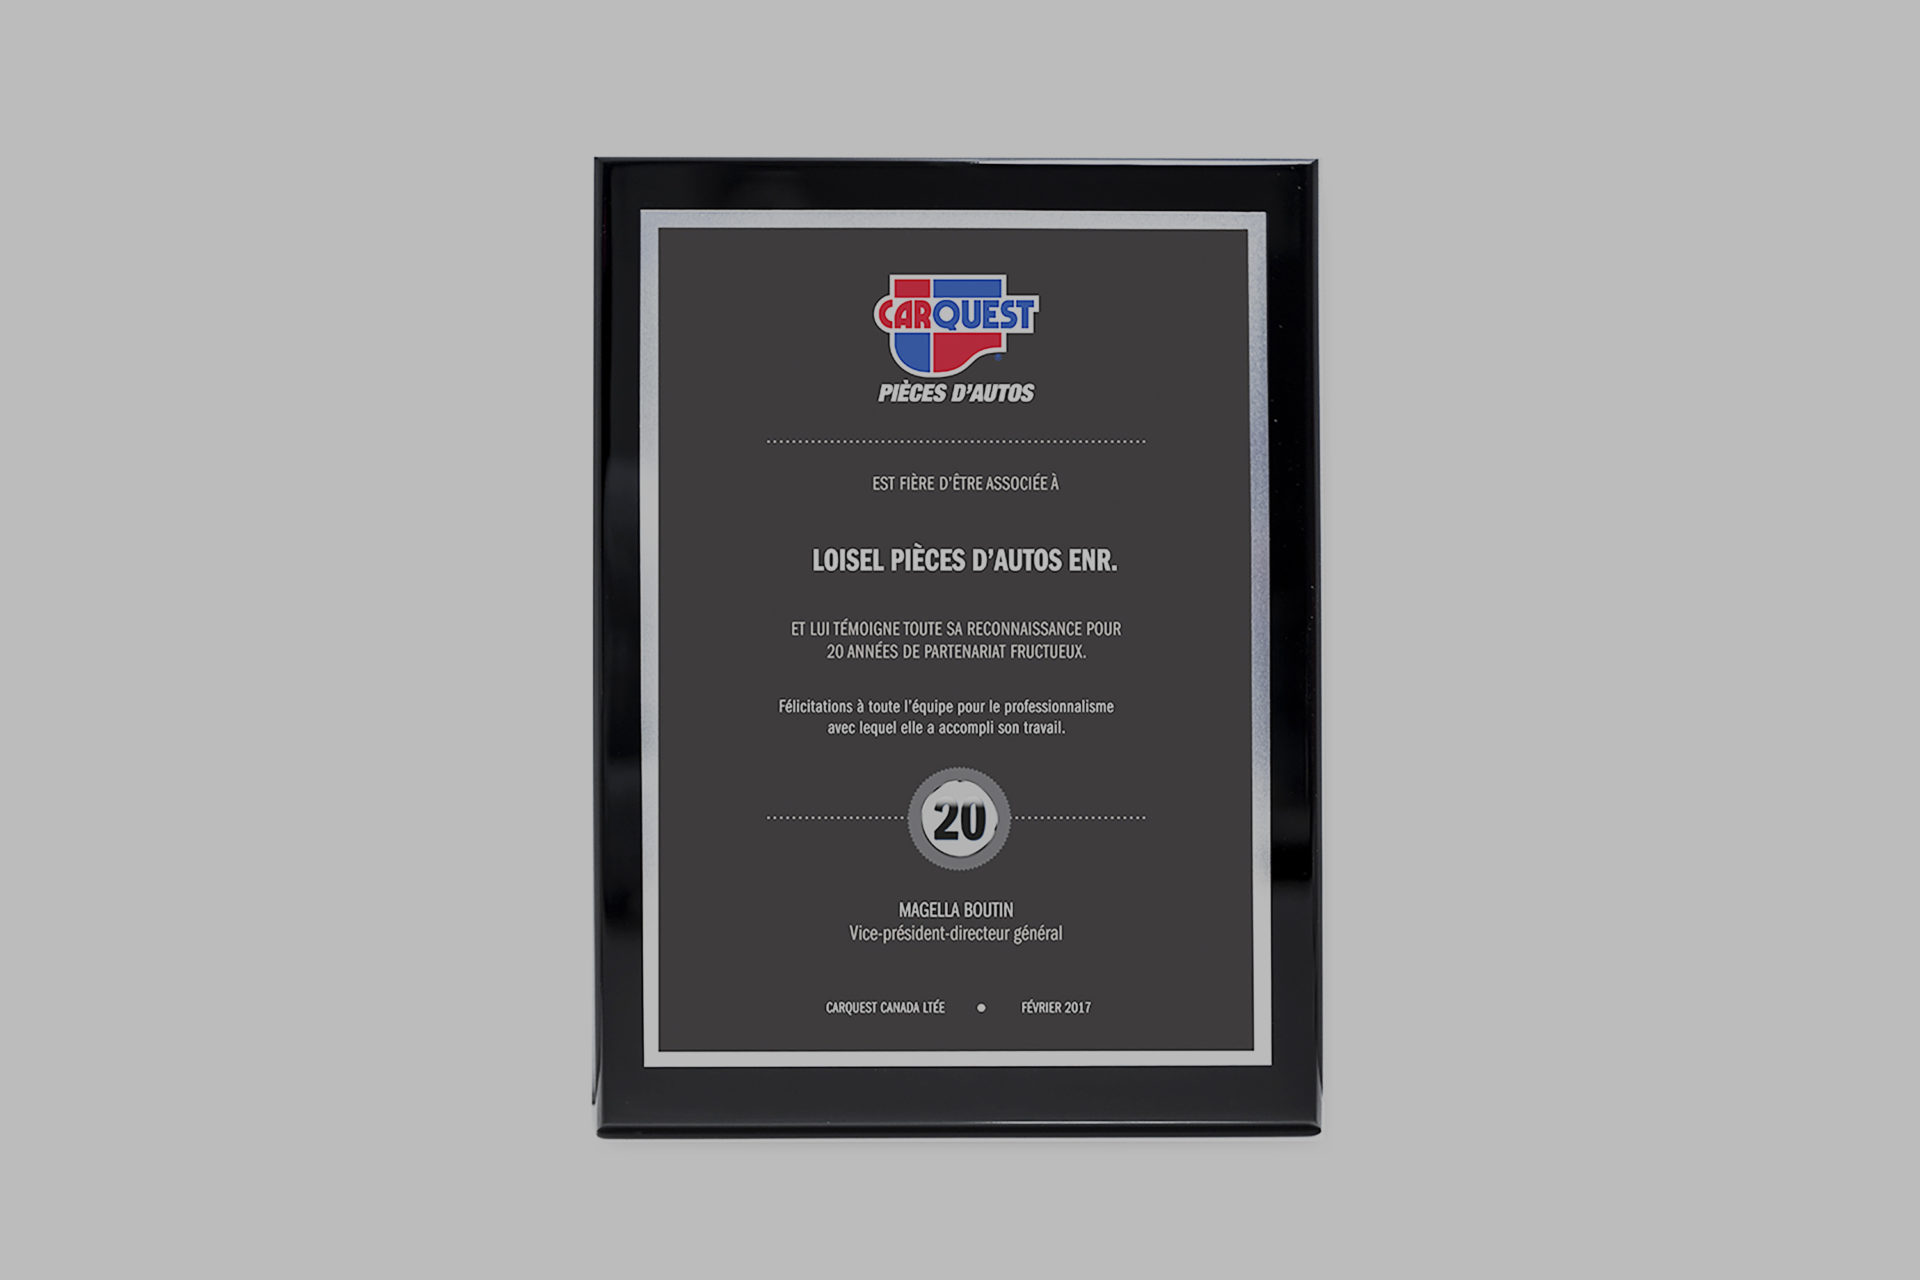 plaque_carquest2